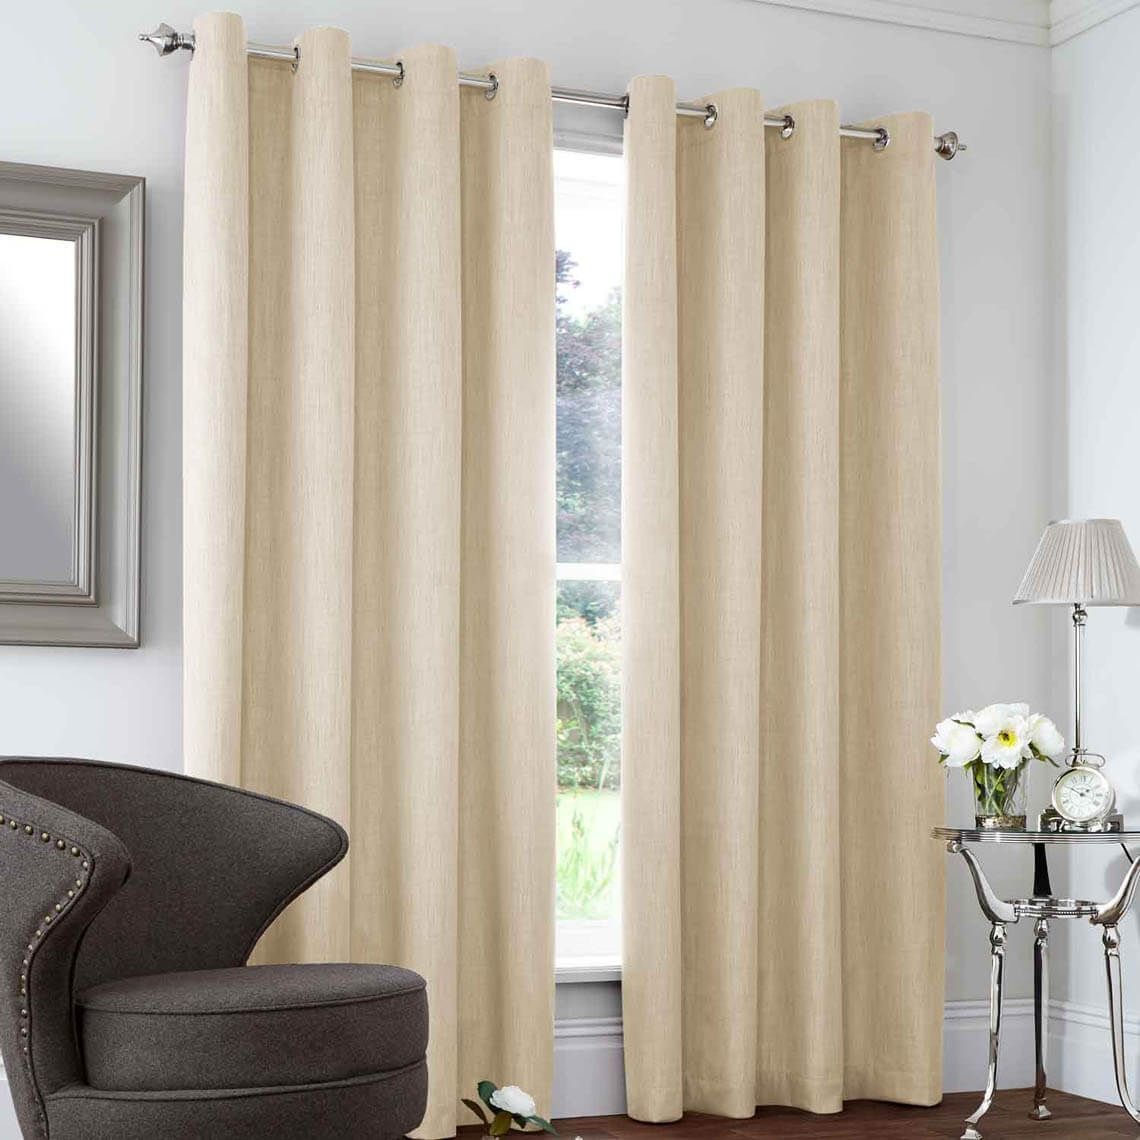 Blackout and Thermal Curtain Cream Thermal curtains